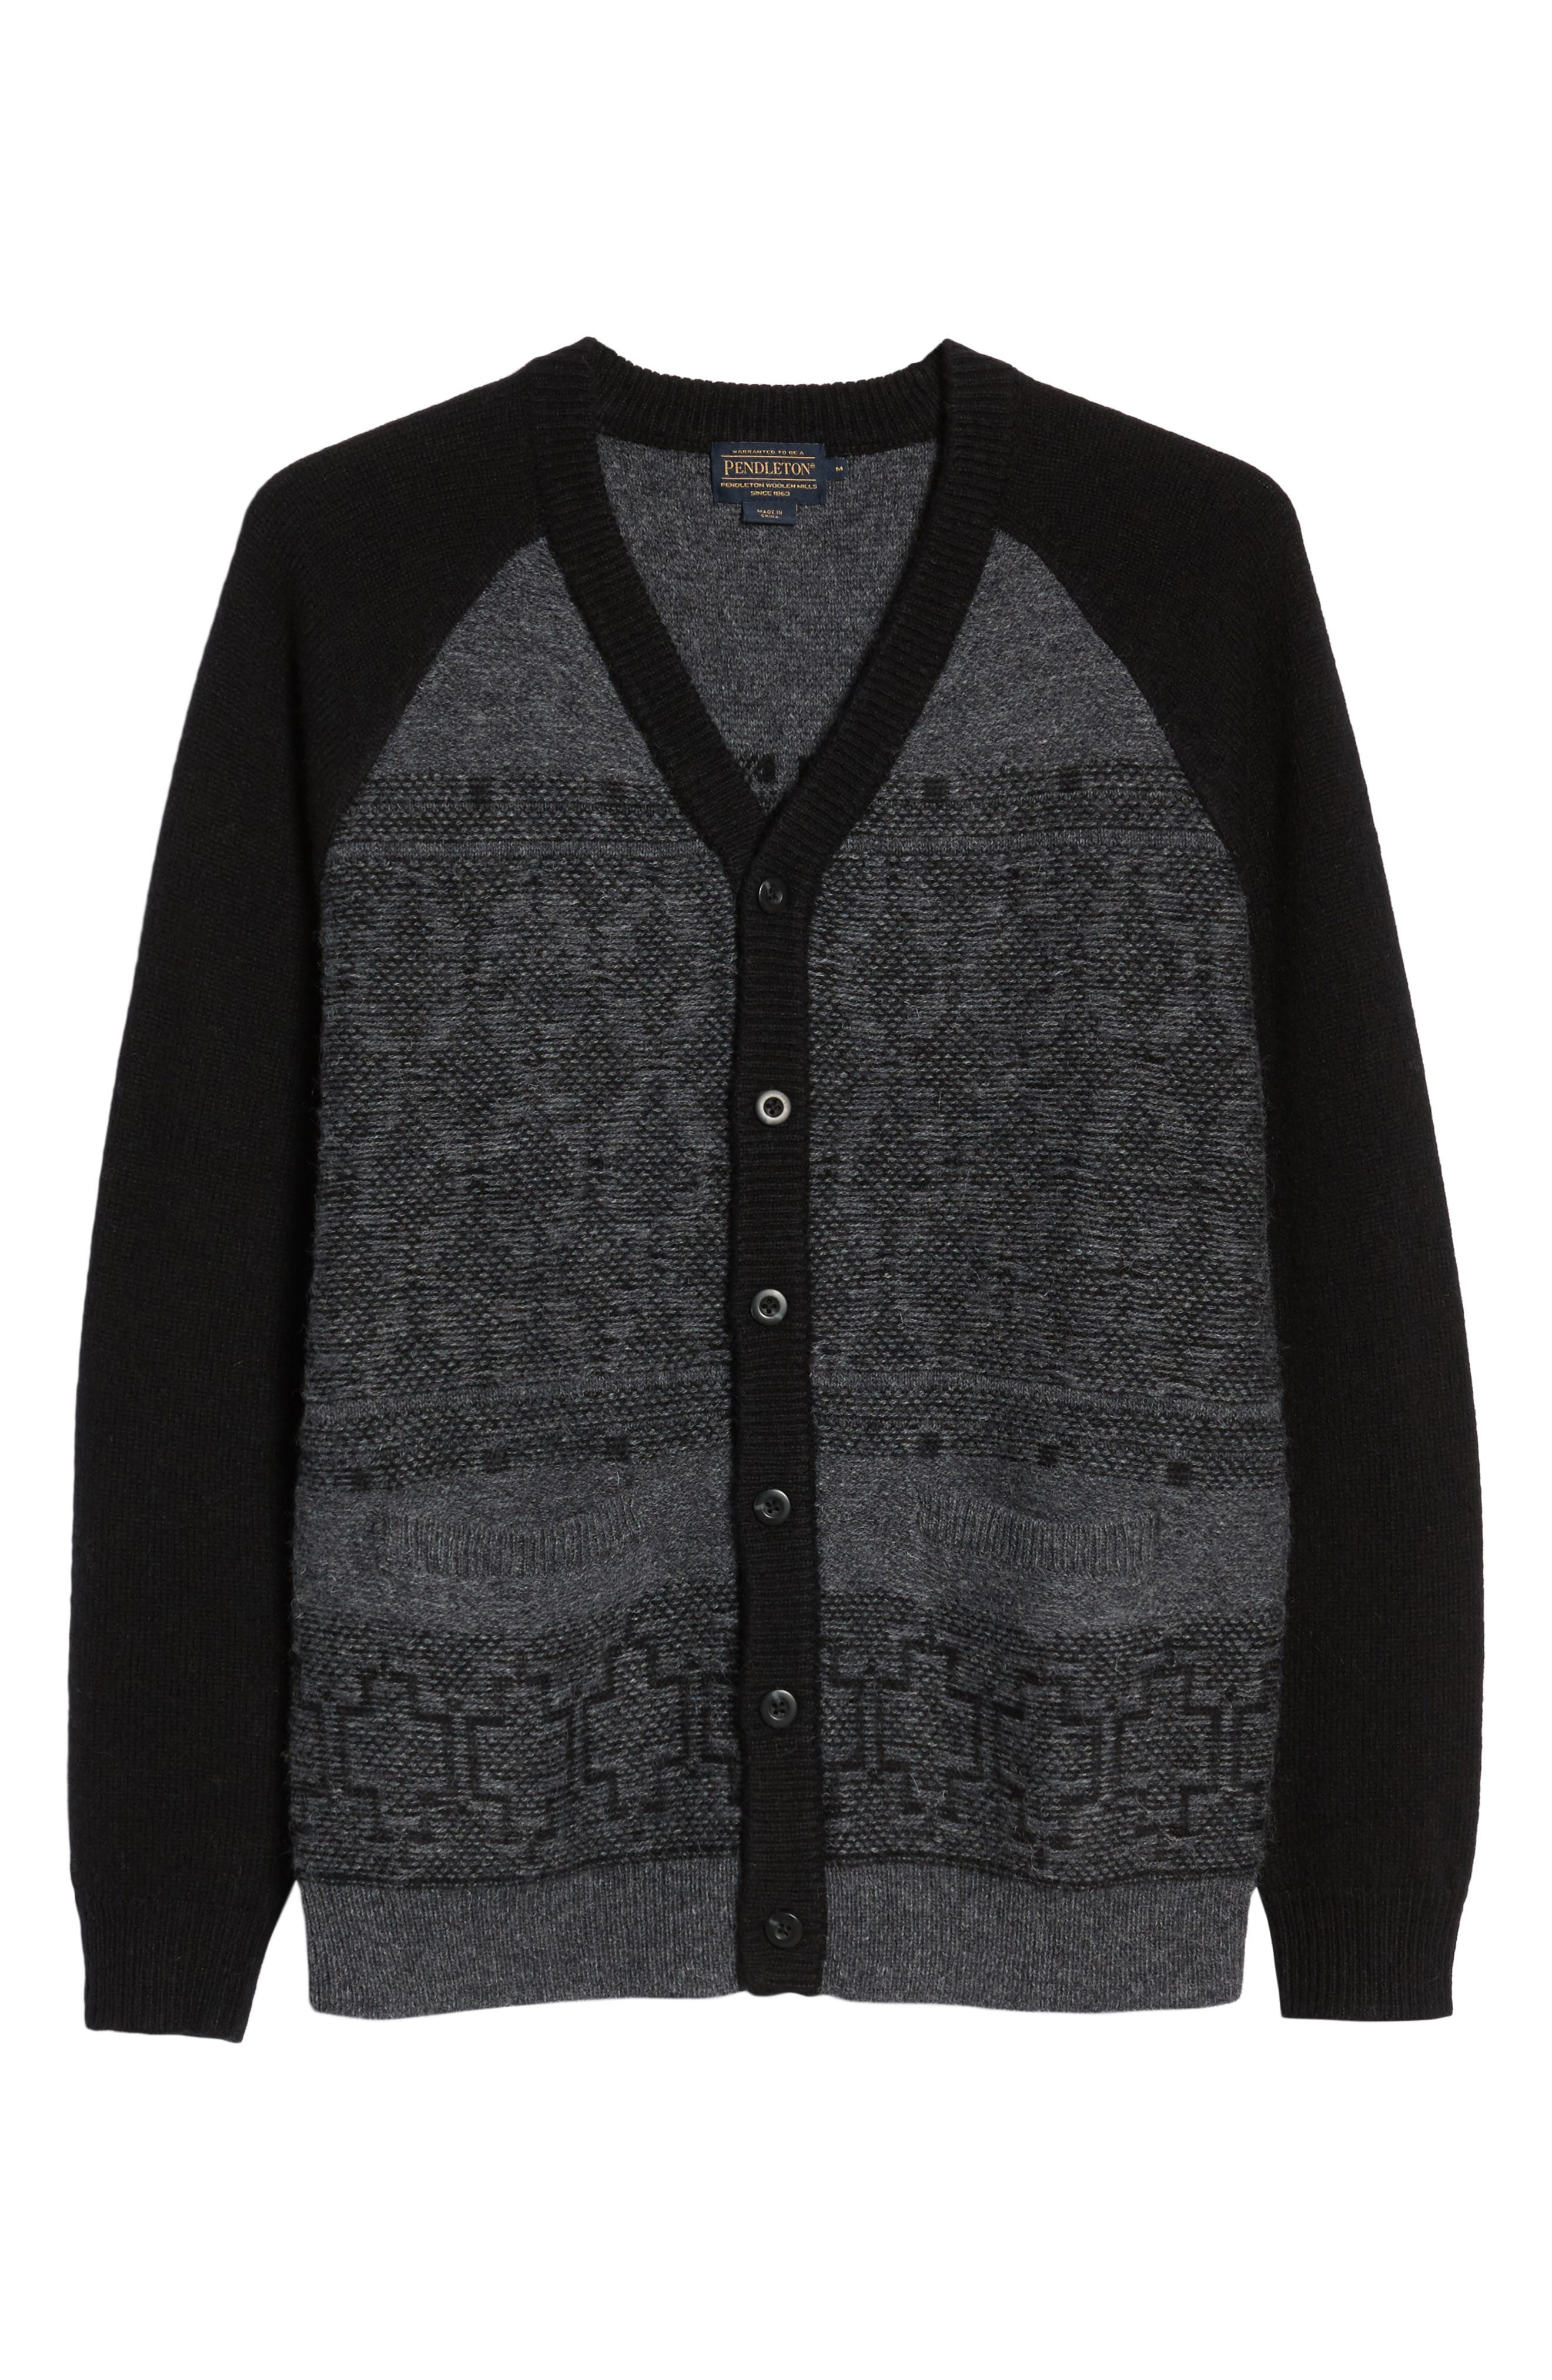 Waverly Cardigan,                             Alternate thumbnail 6, color,                             Grey/ Black